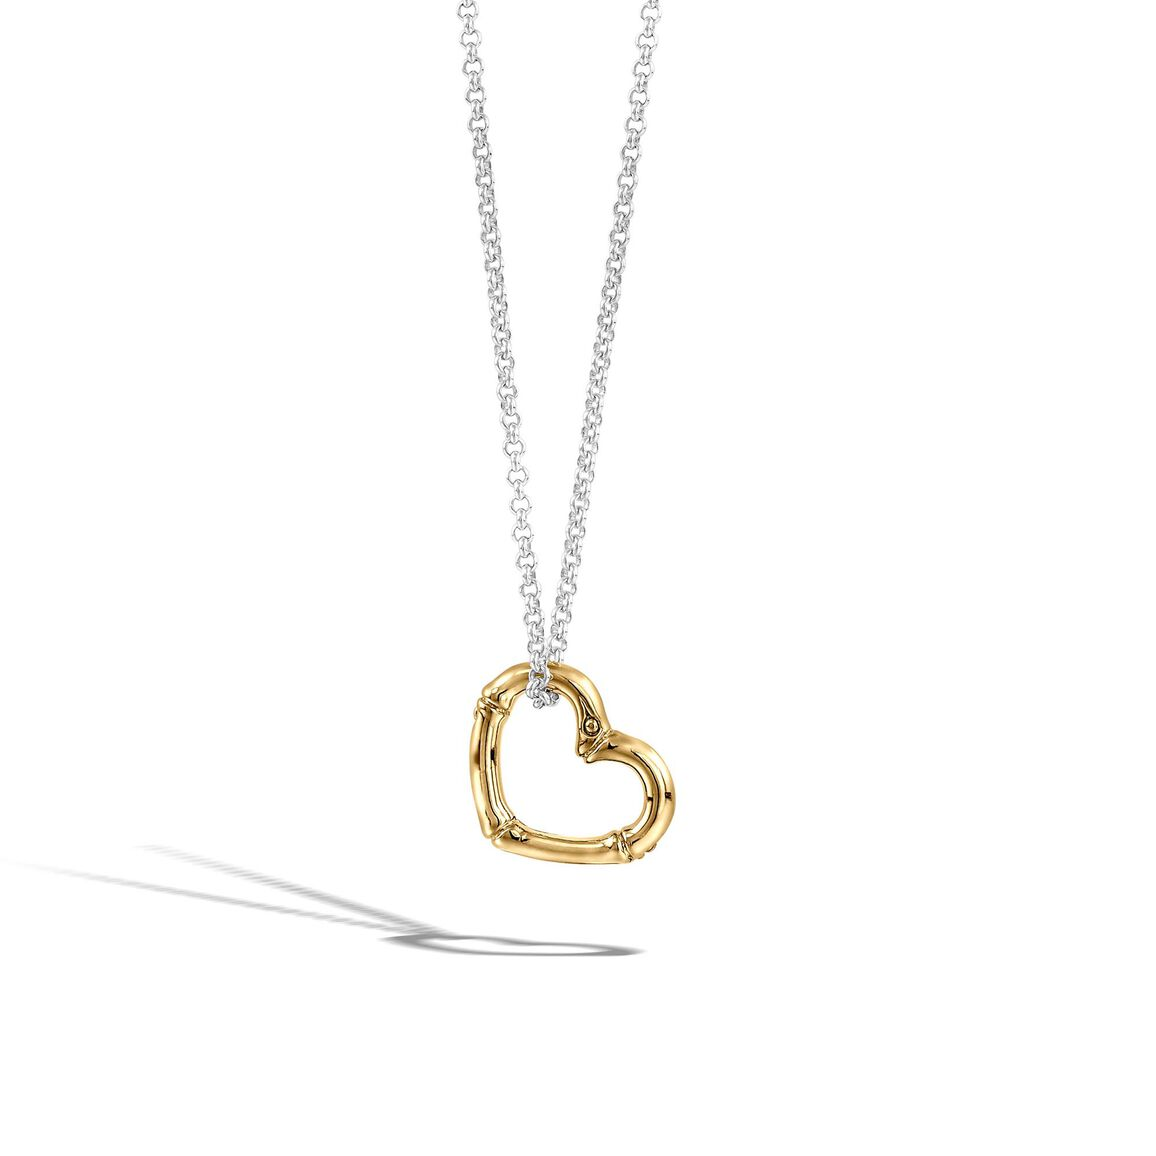 Bamboo Heart Pendant Necklace in Silver and 18K Gold